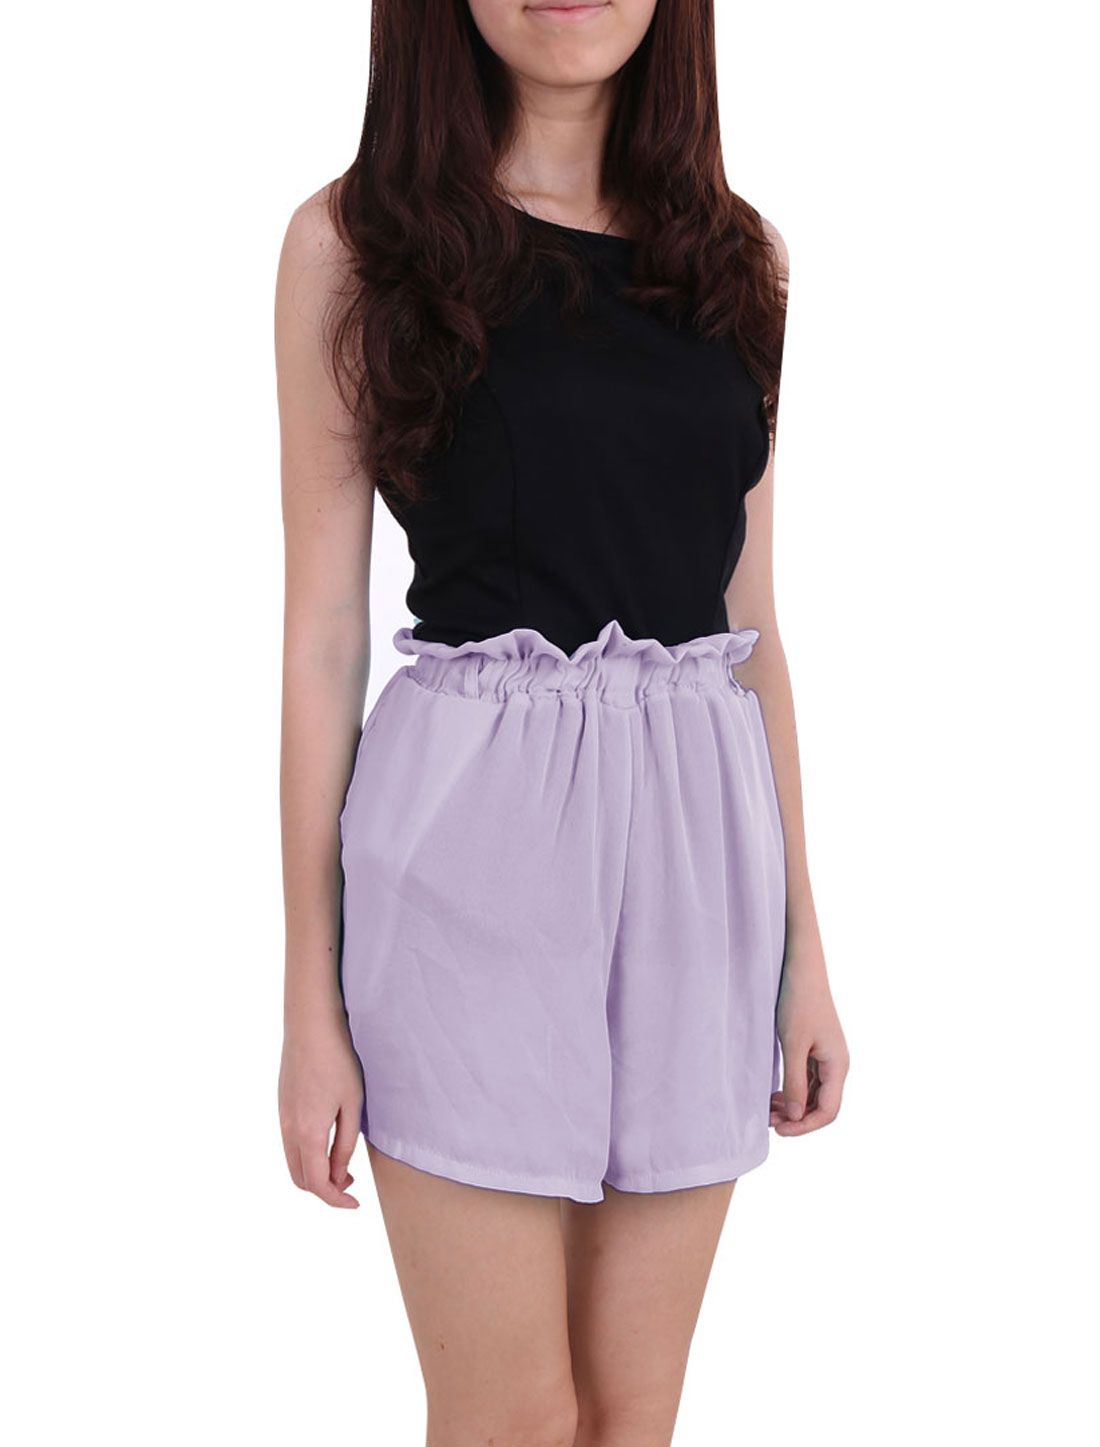 Women Ruffled Elastic High Waist Chiffon Mini Shorts Purple XS